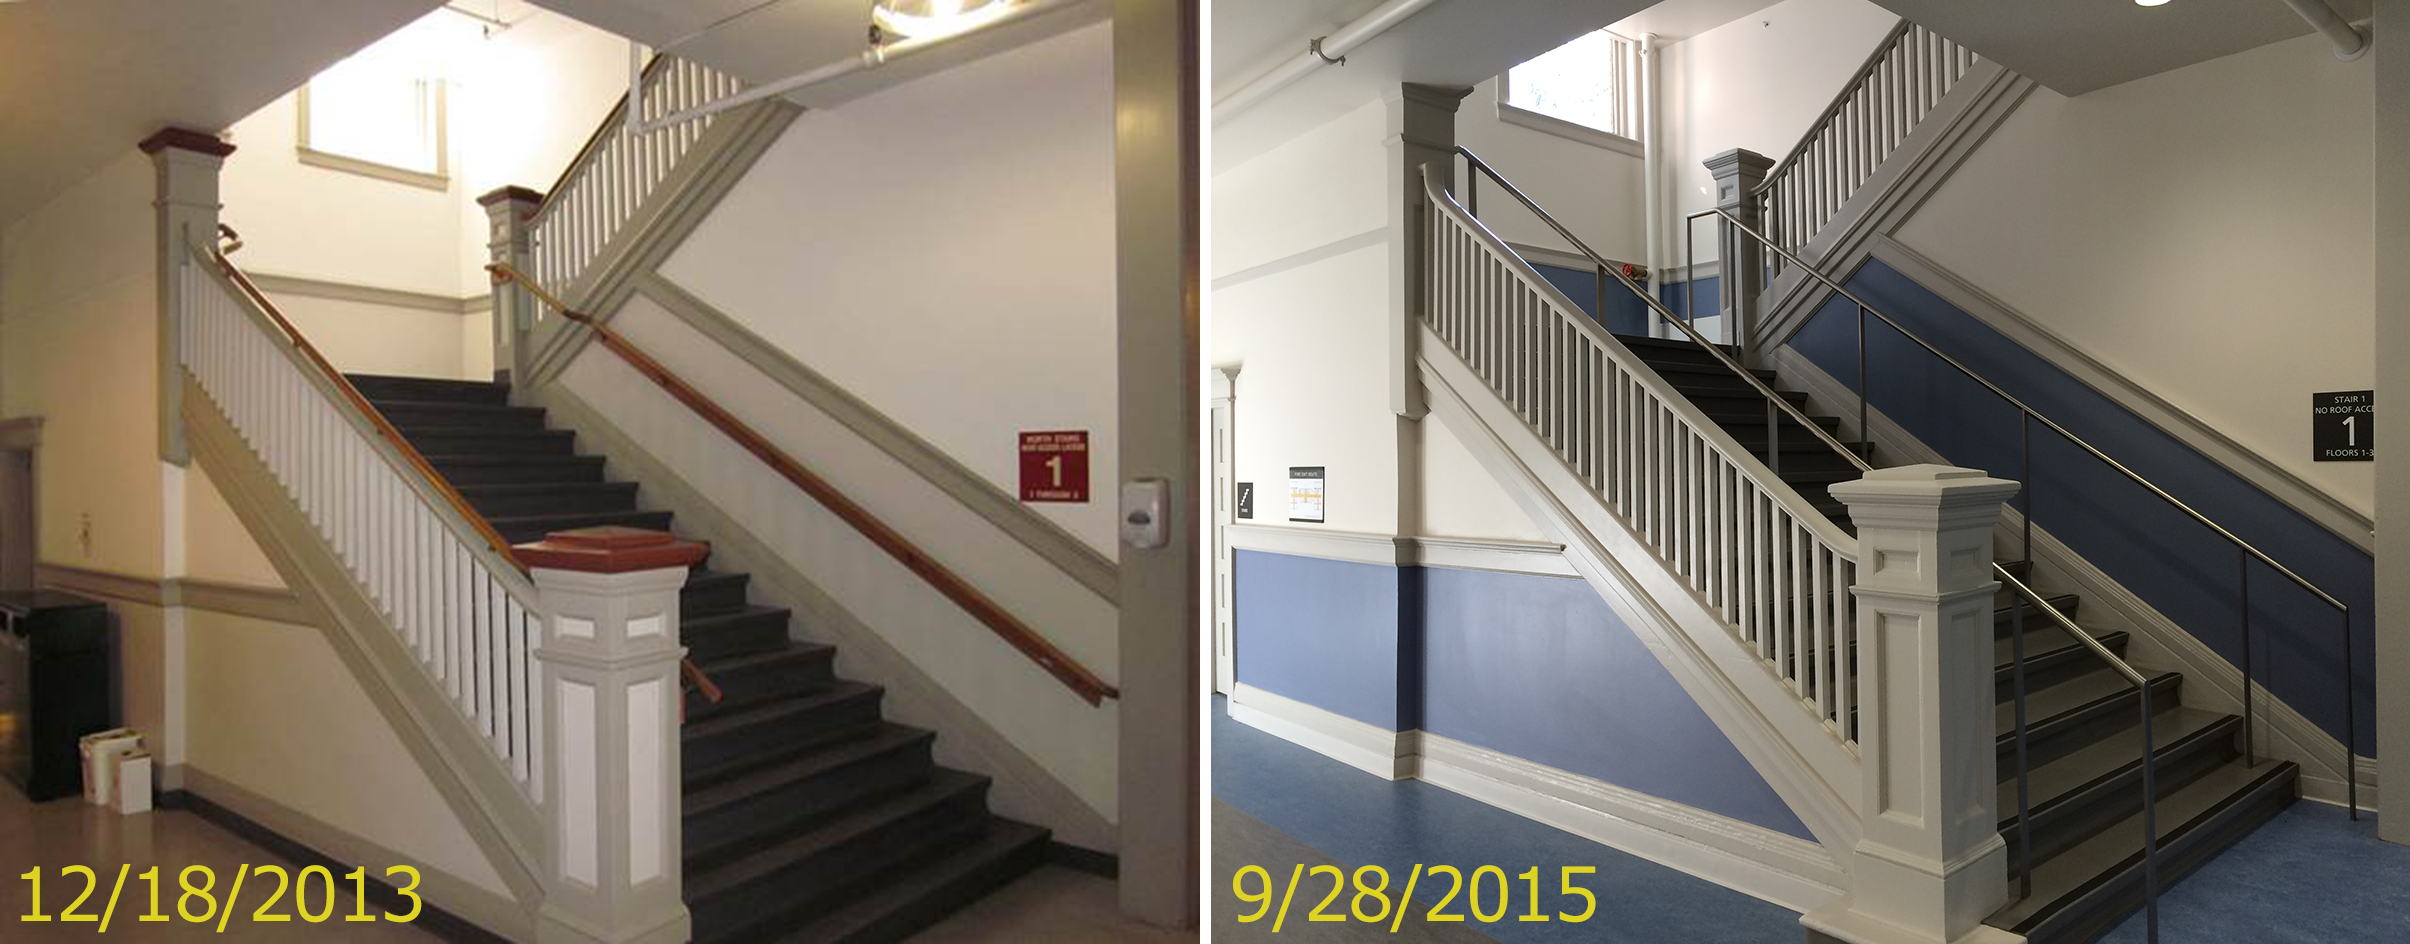 Internal stairs retain historic features with new accessible handrails